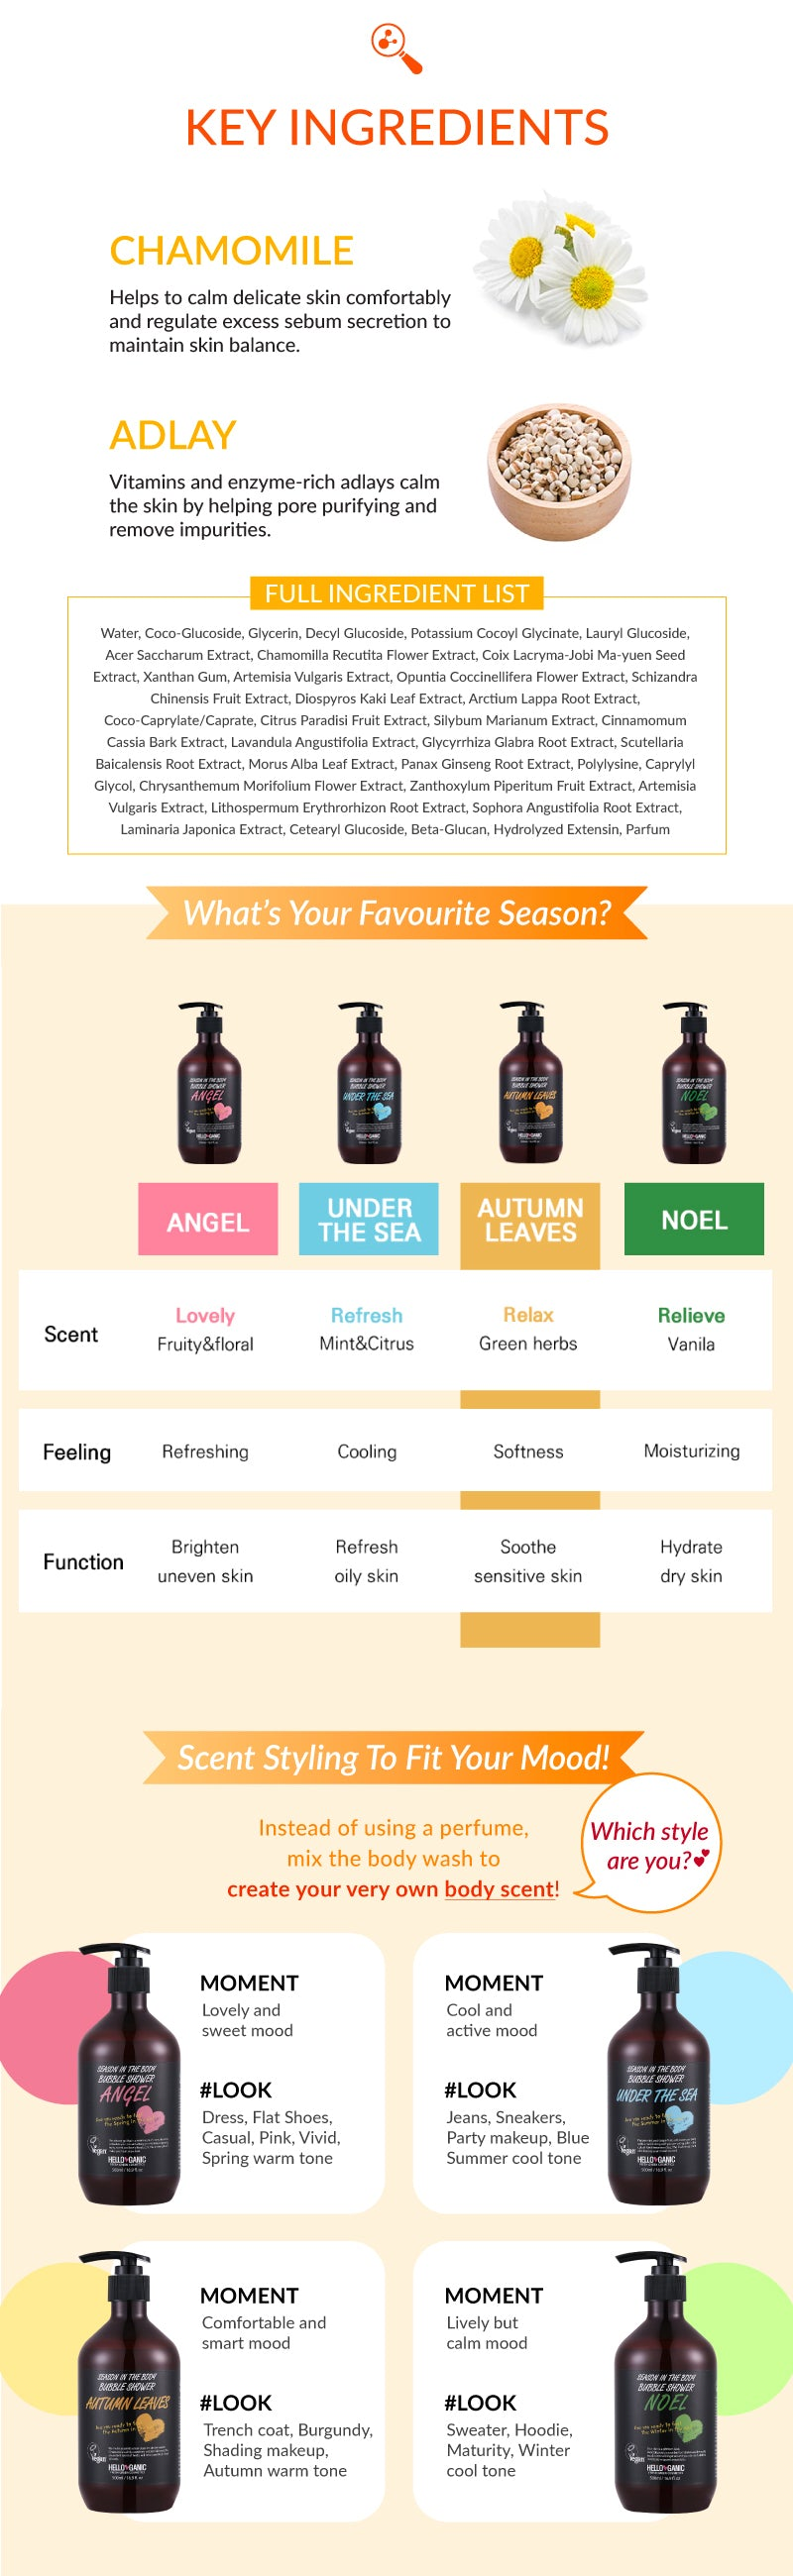 Check out the Ingredient list with Chamomile and Adlay Extracts! With 4 different seasons for different moods, feeling and function! Choose a scent that suits your style today! Mix the scents to create your own body scent today!